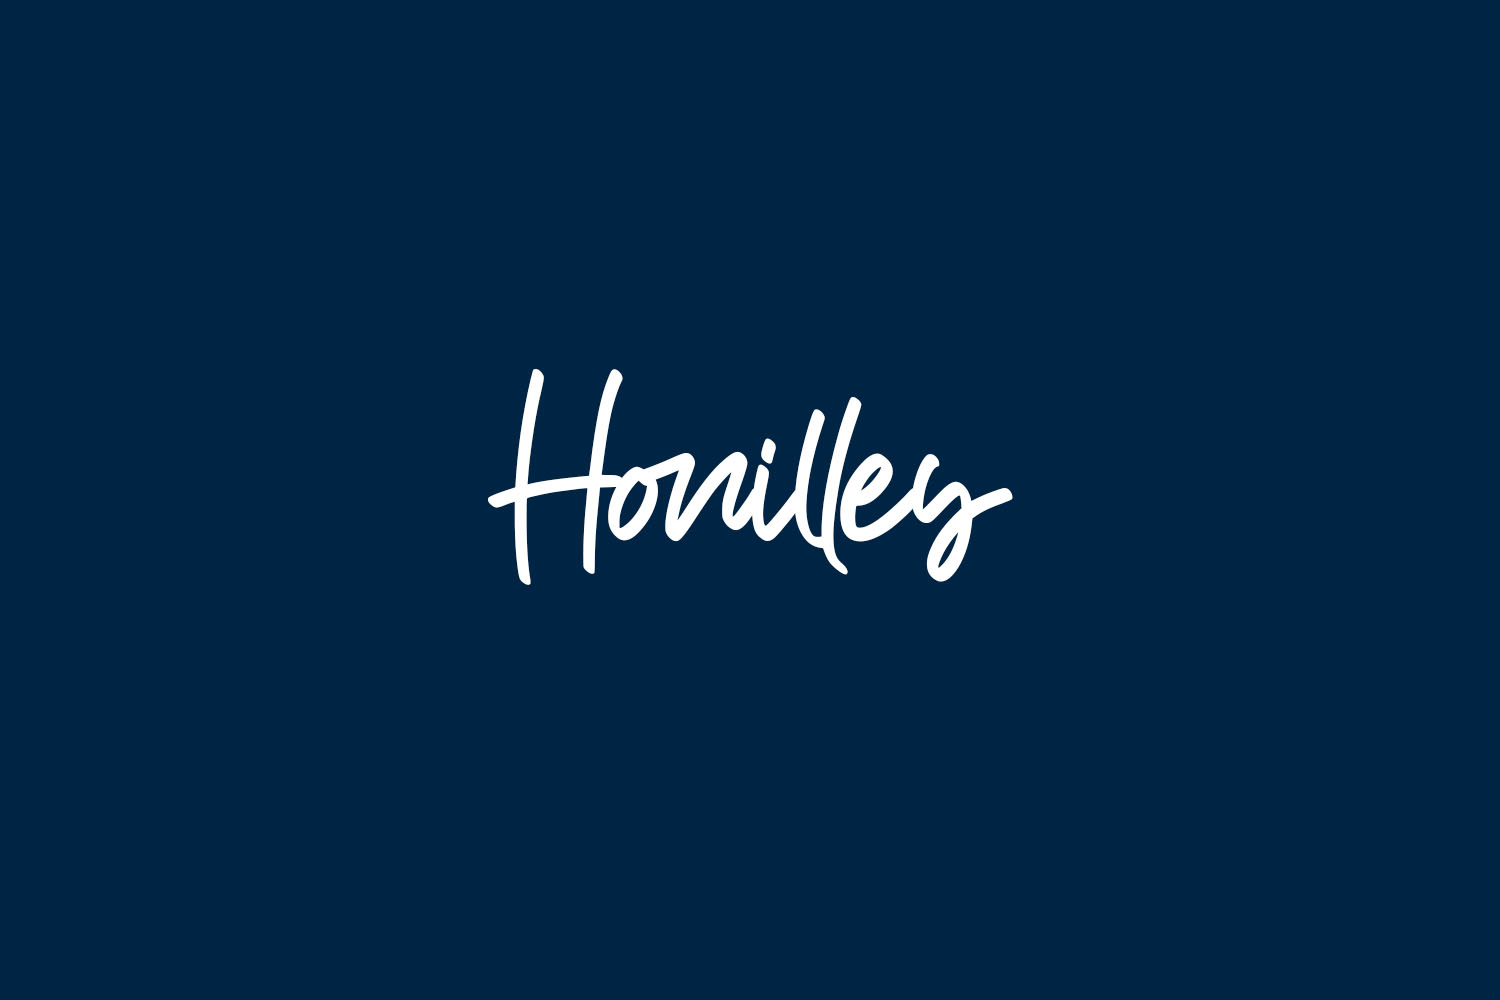 Honilley Free Font